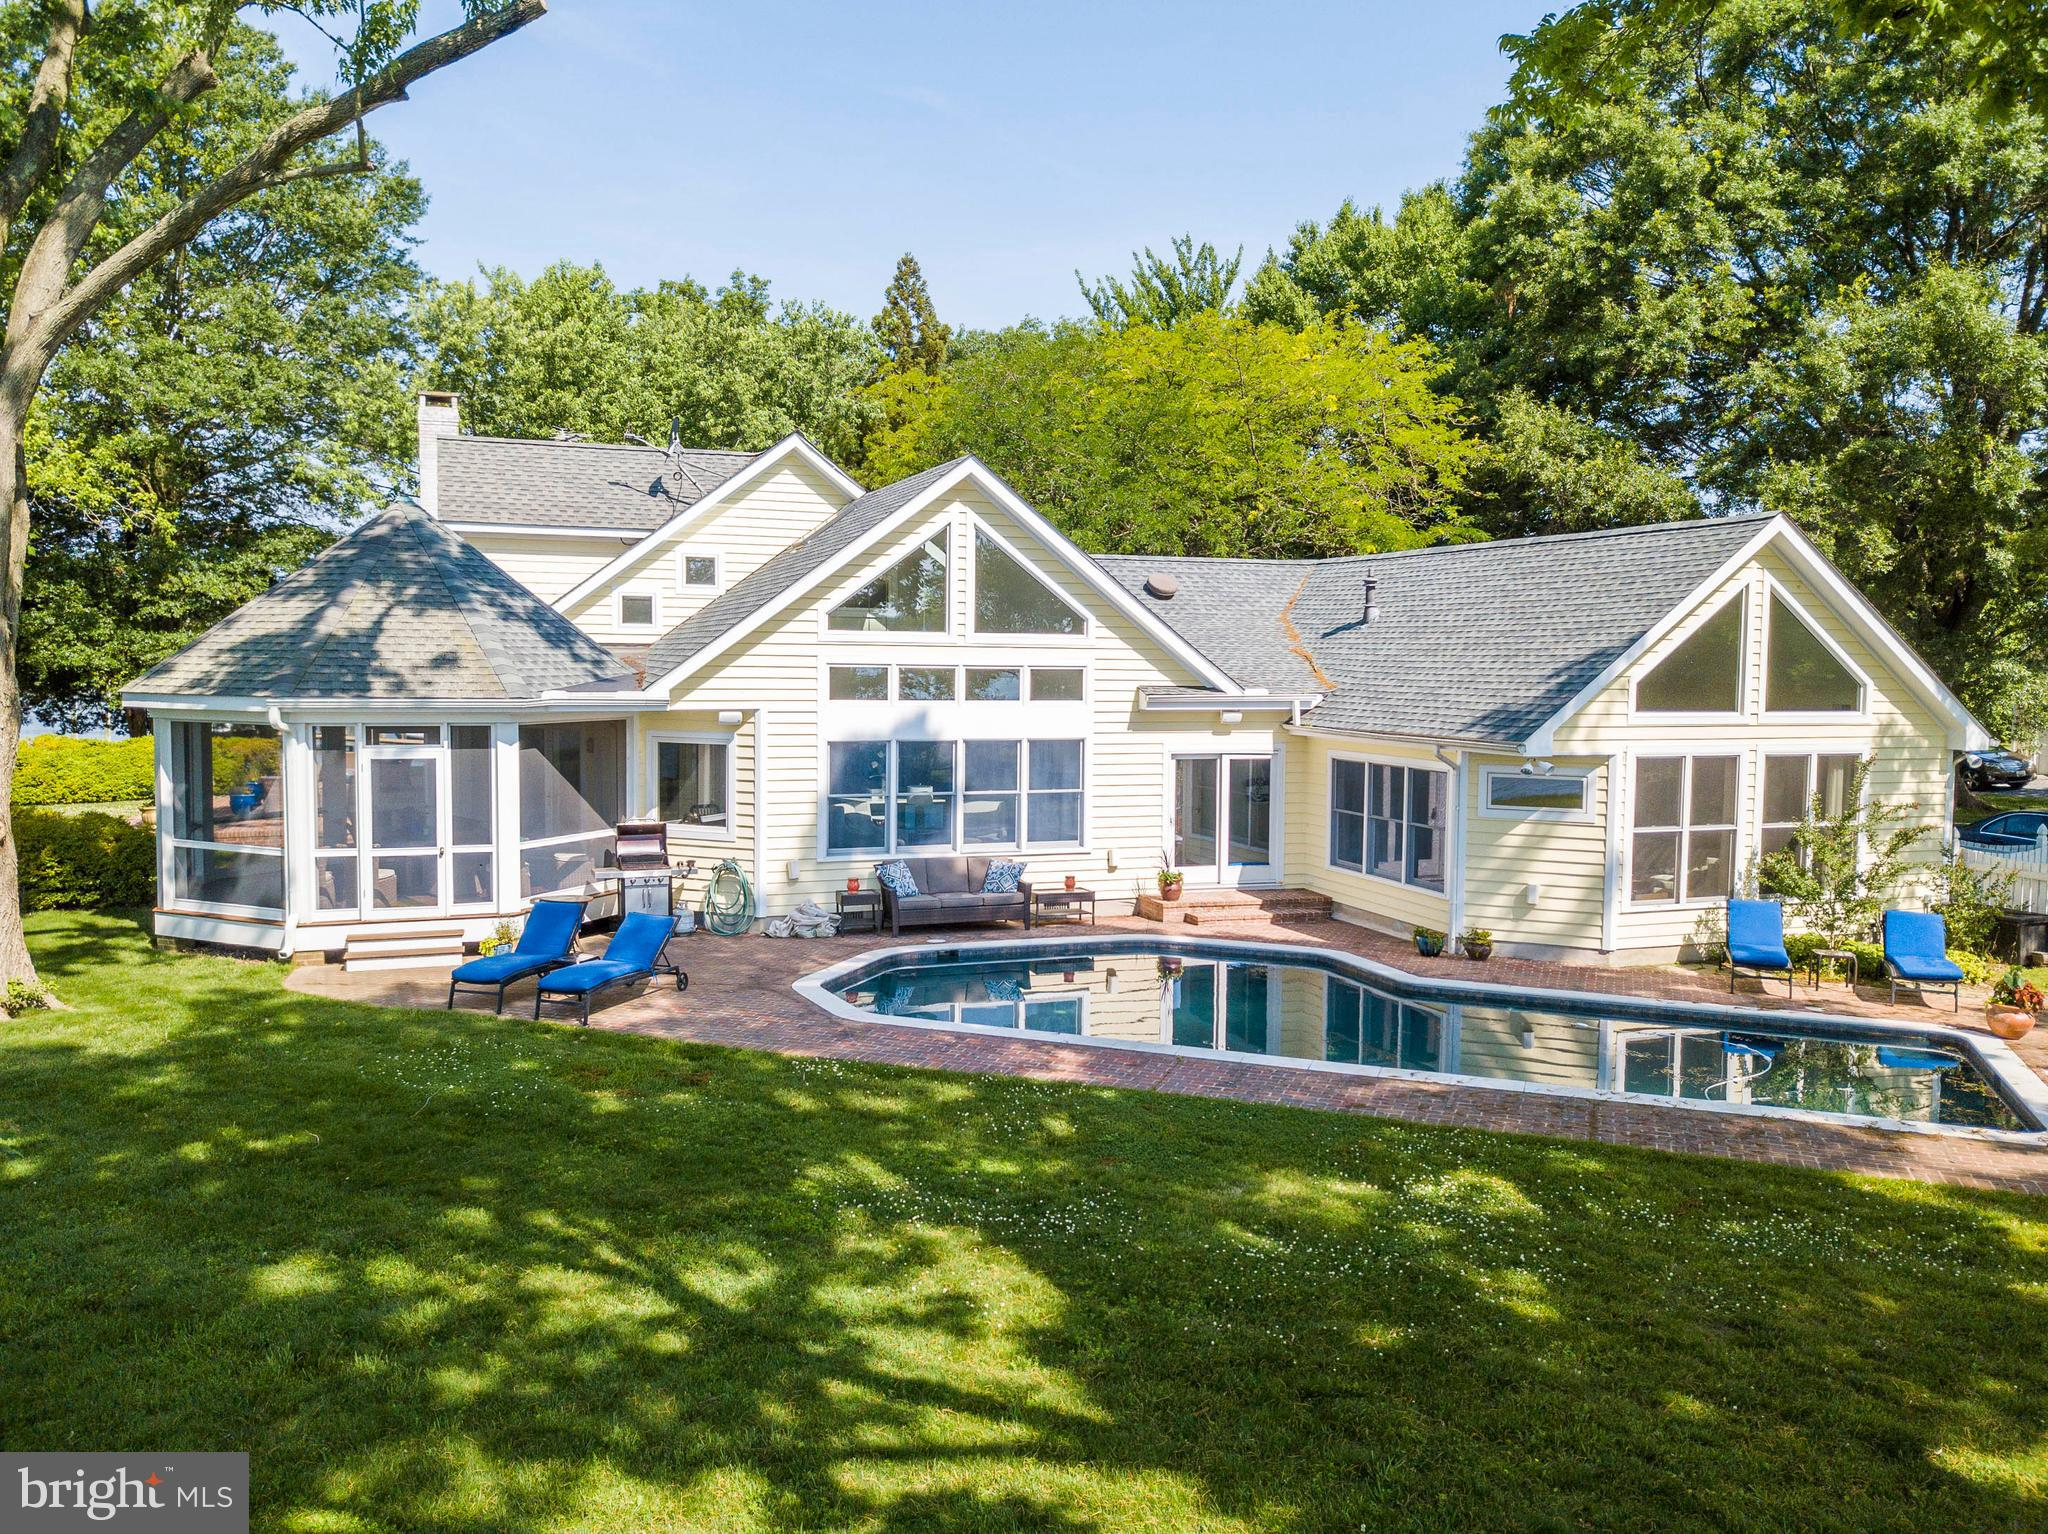 4316 HOLLY HARBOR ROAD, OXFORD, MD 21654